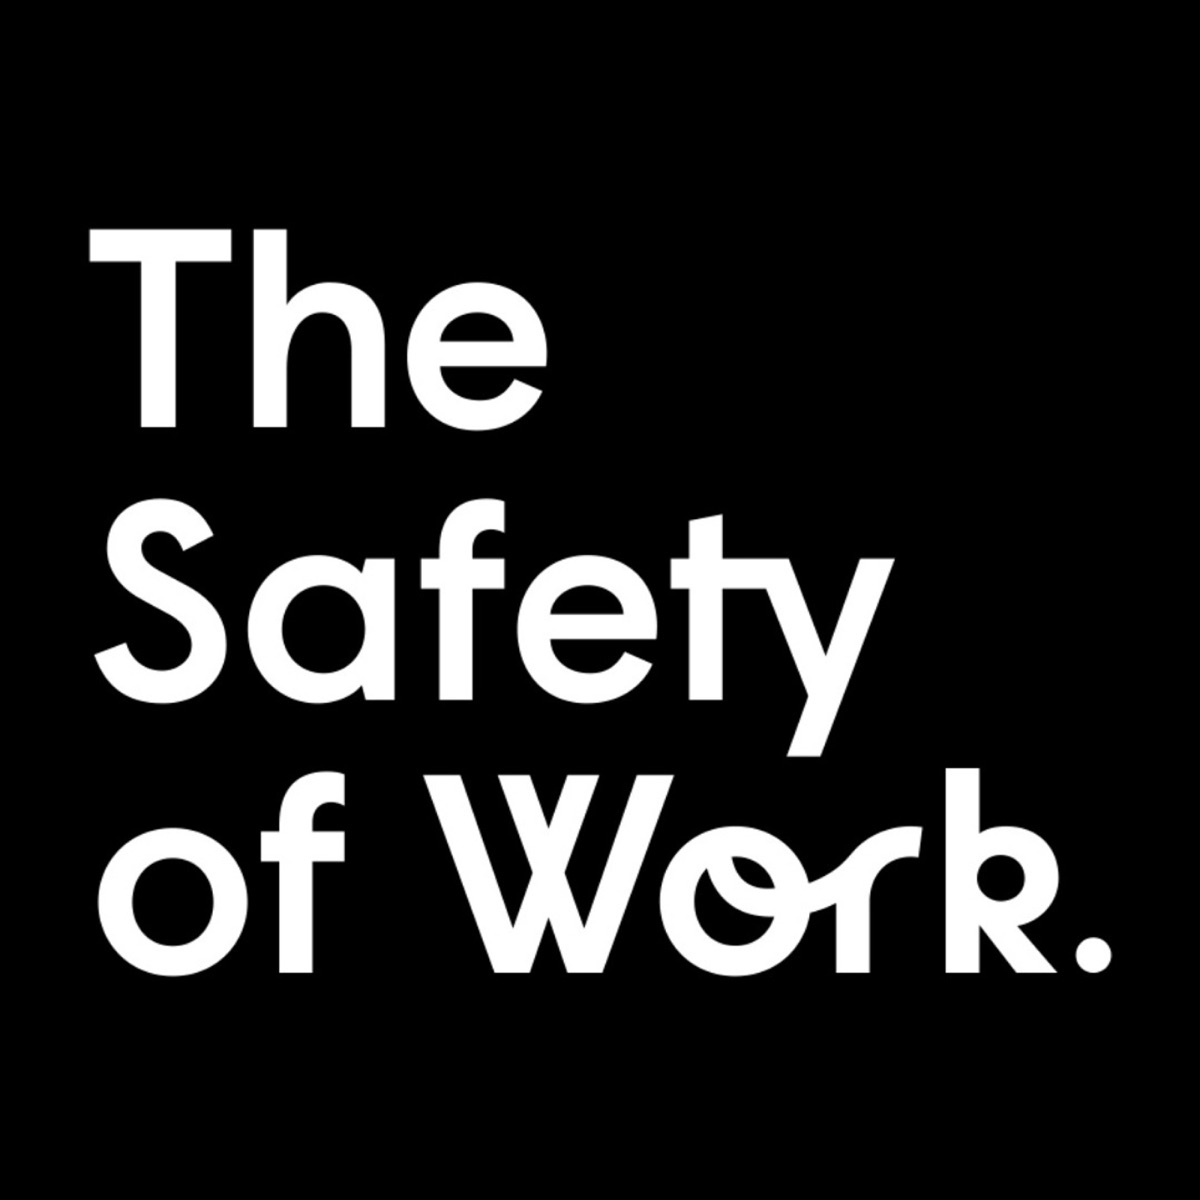 The Safety of Work